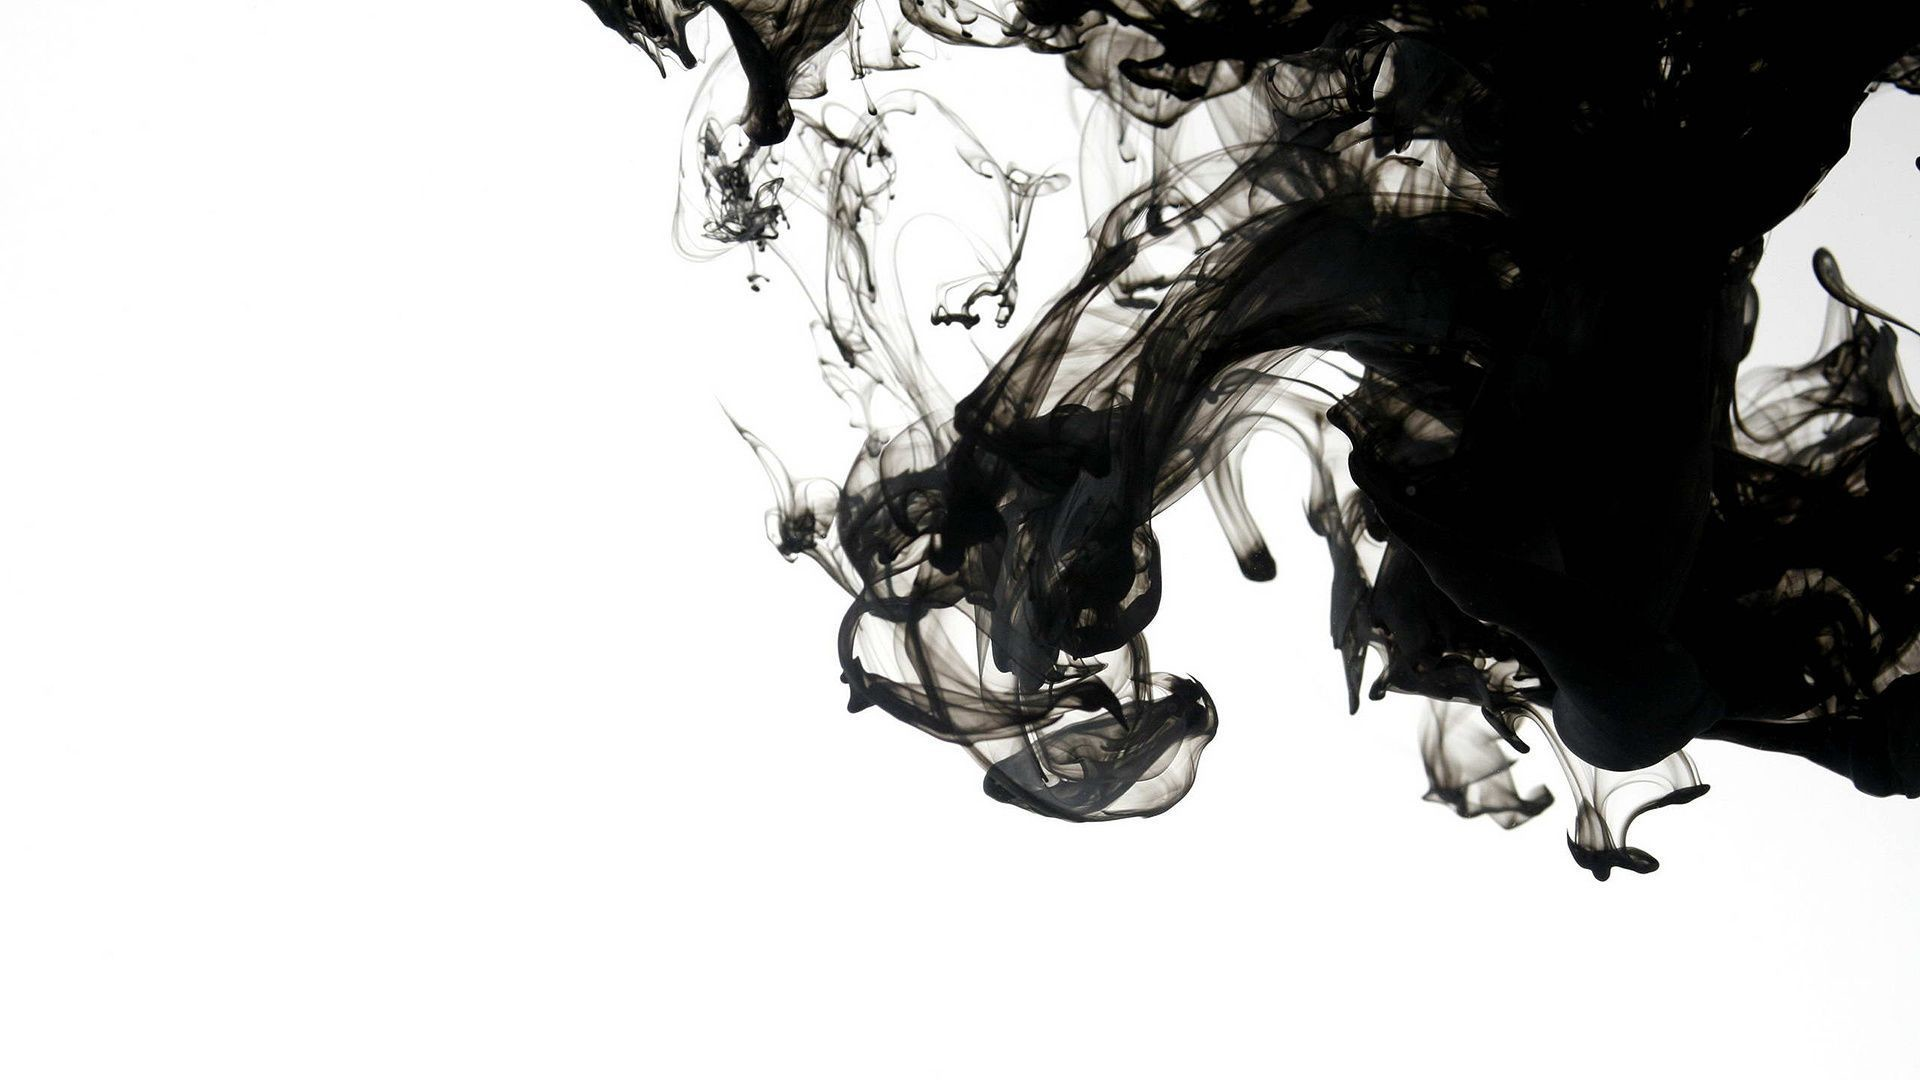 hd-black-abstract-wallpapers-1080p – HD Widescreen Wallpapers